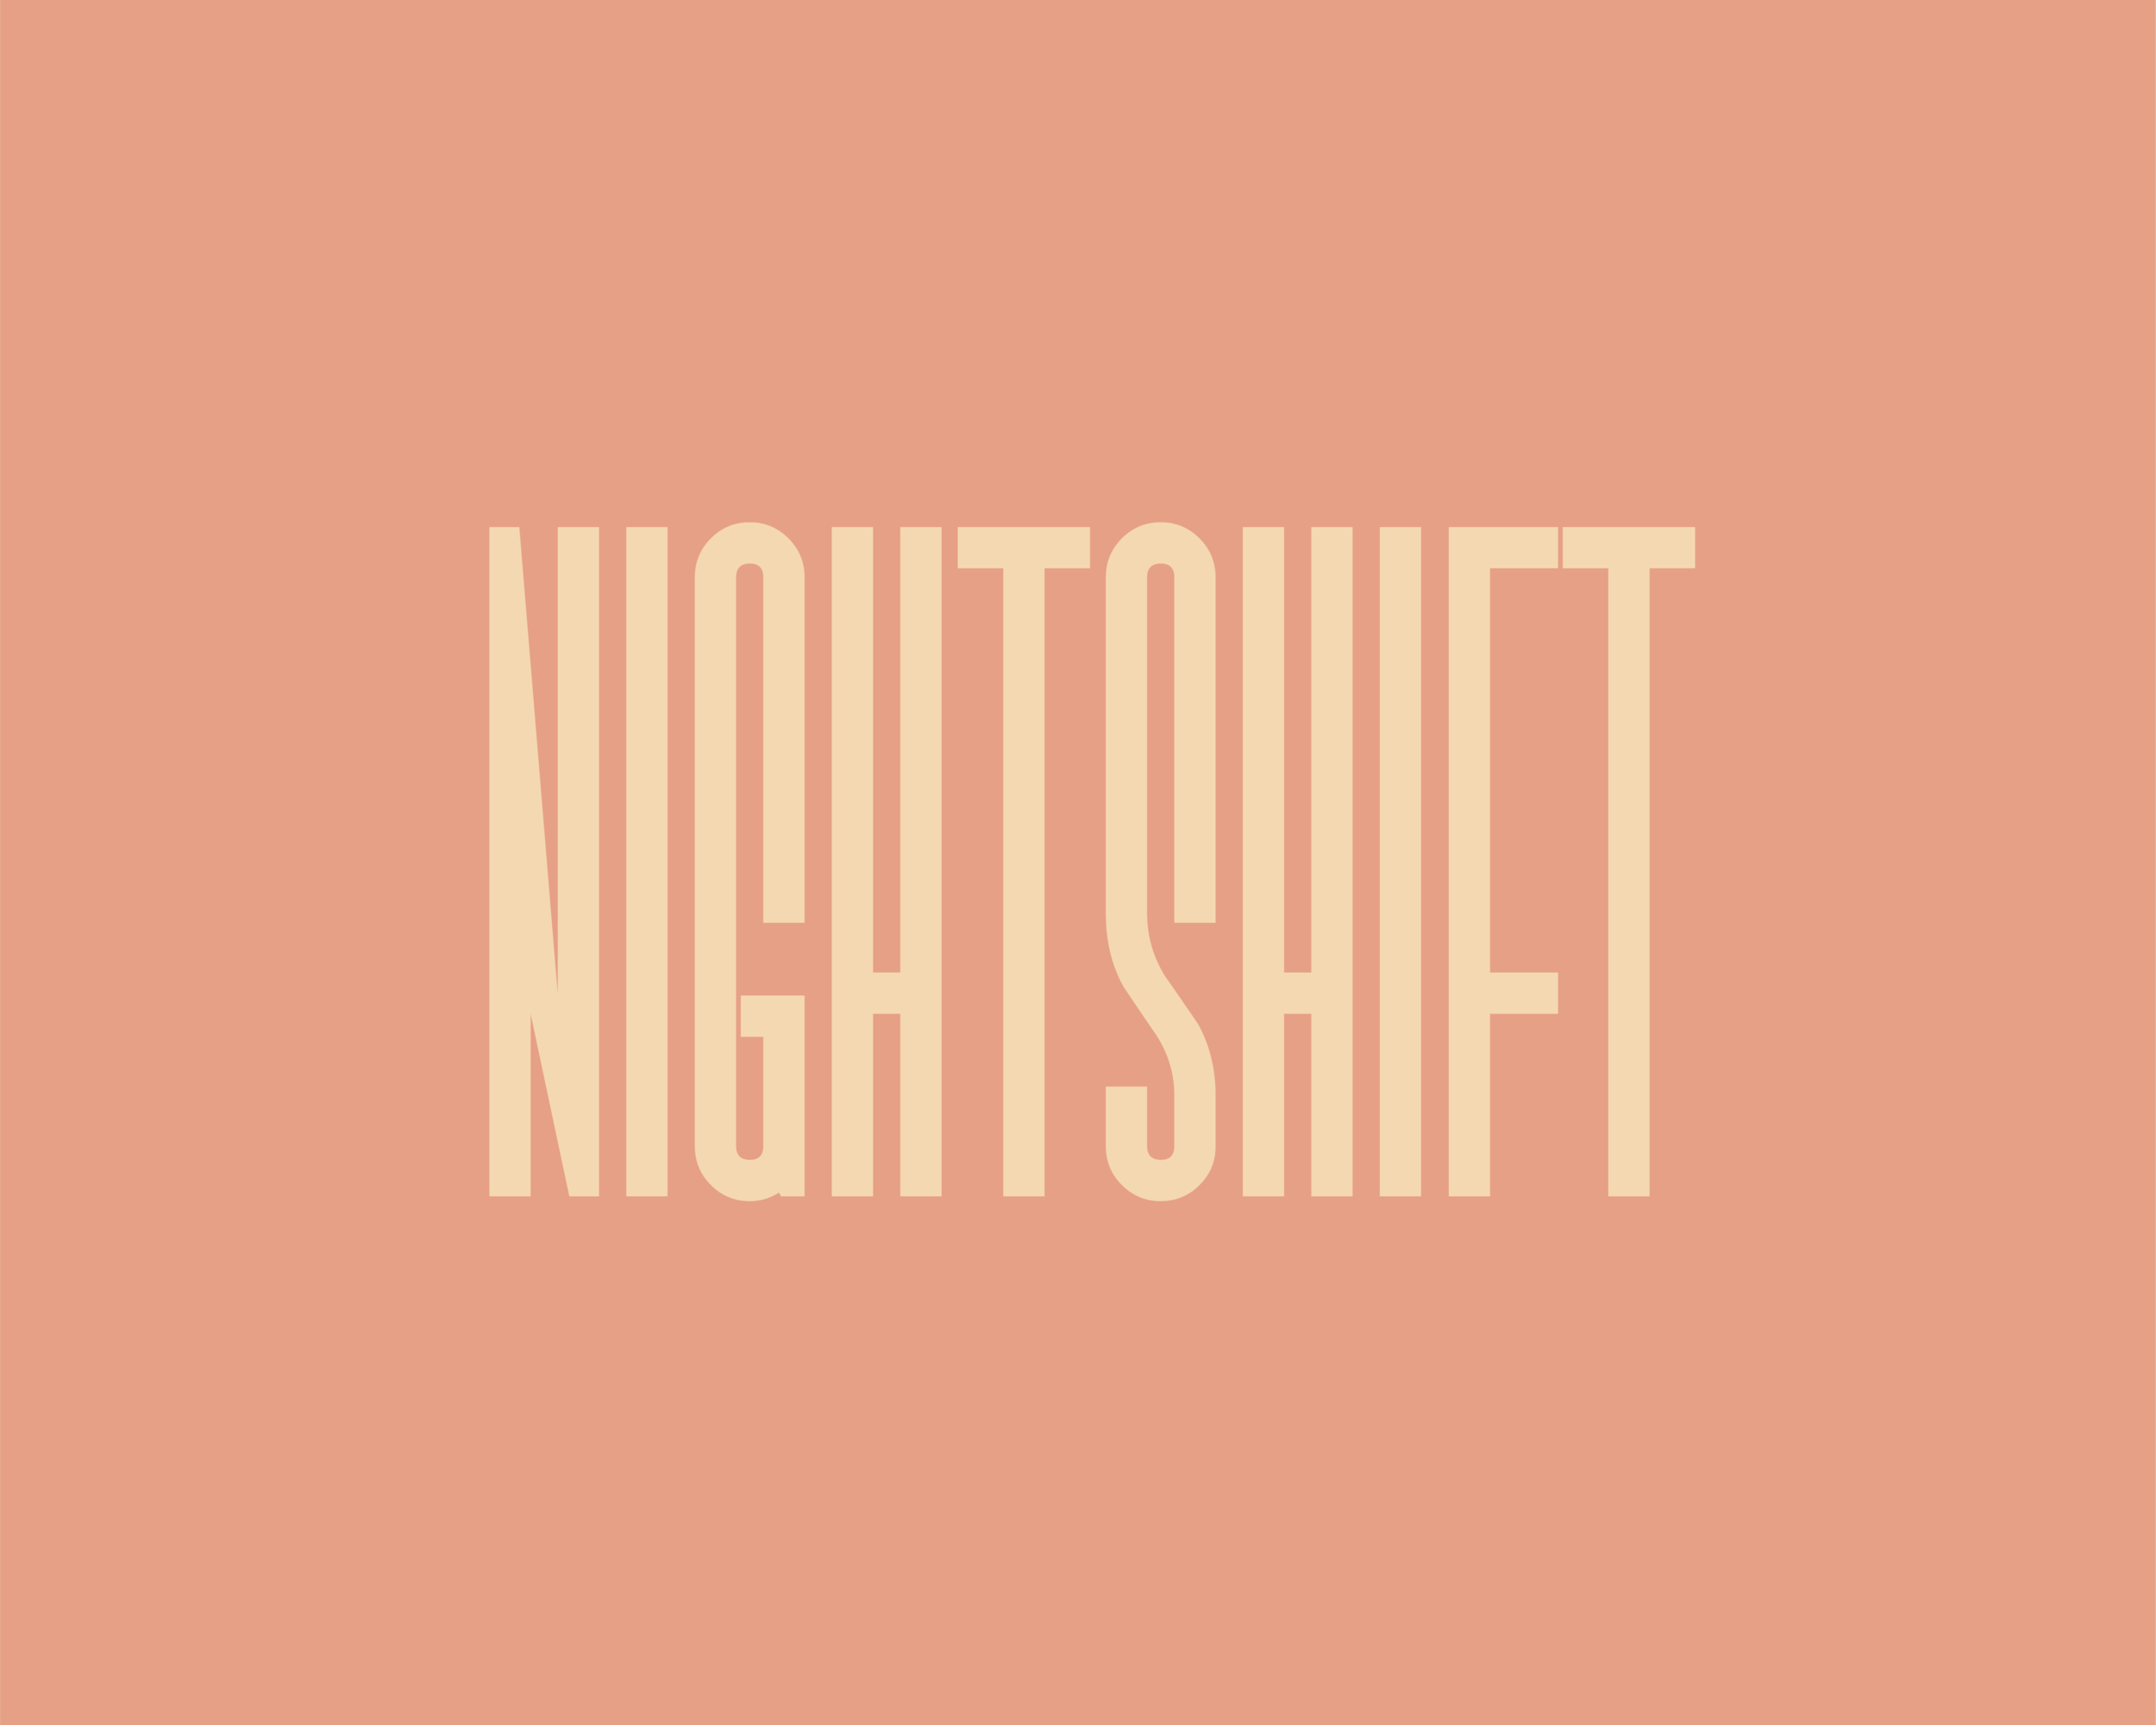 THE NIGHT SHIFT WORKSHOP   It's time to clock in  - this workshop provides a diverse experience of storytelling through movement, hip hop, and contemporary. A group reflection is offered at the end of this shift.